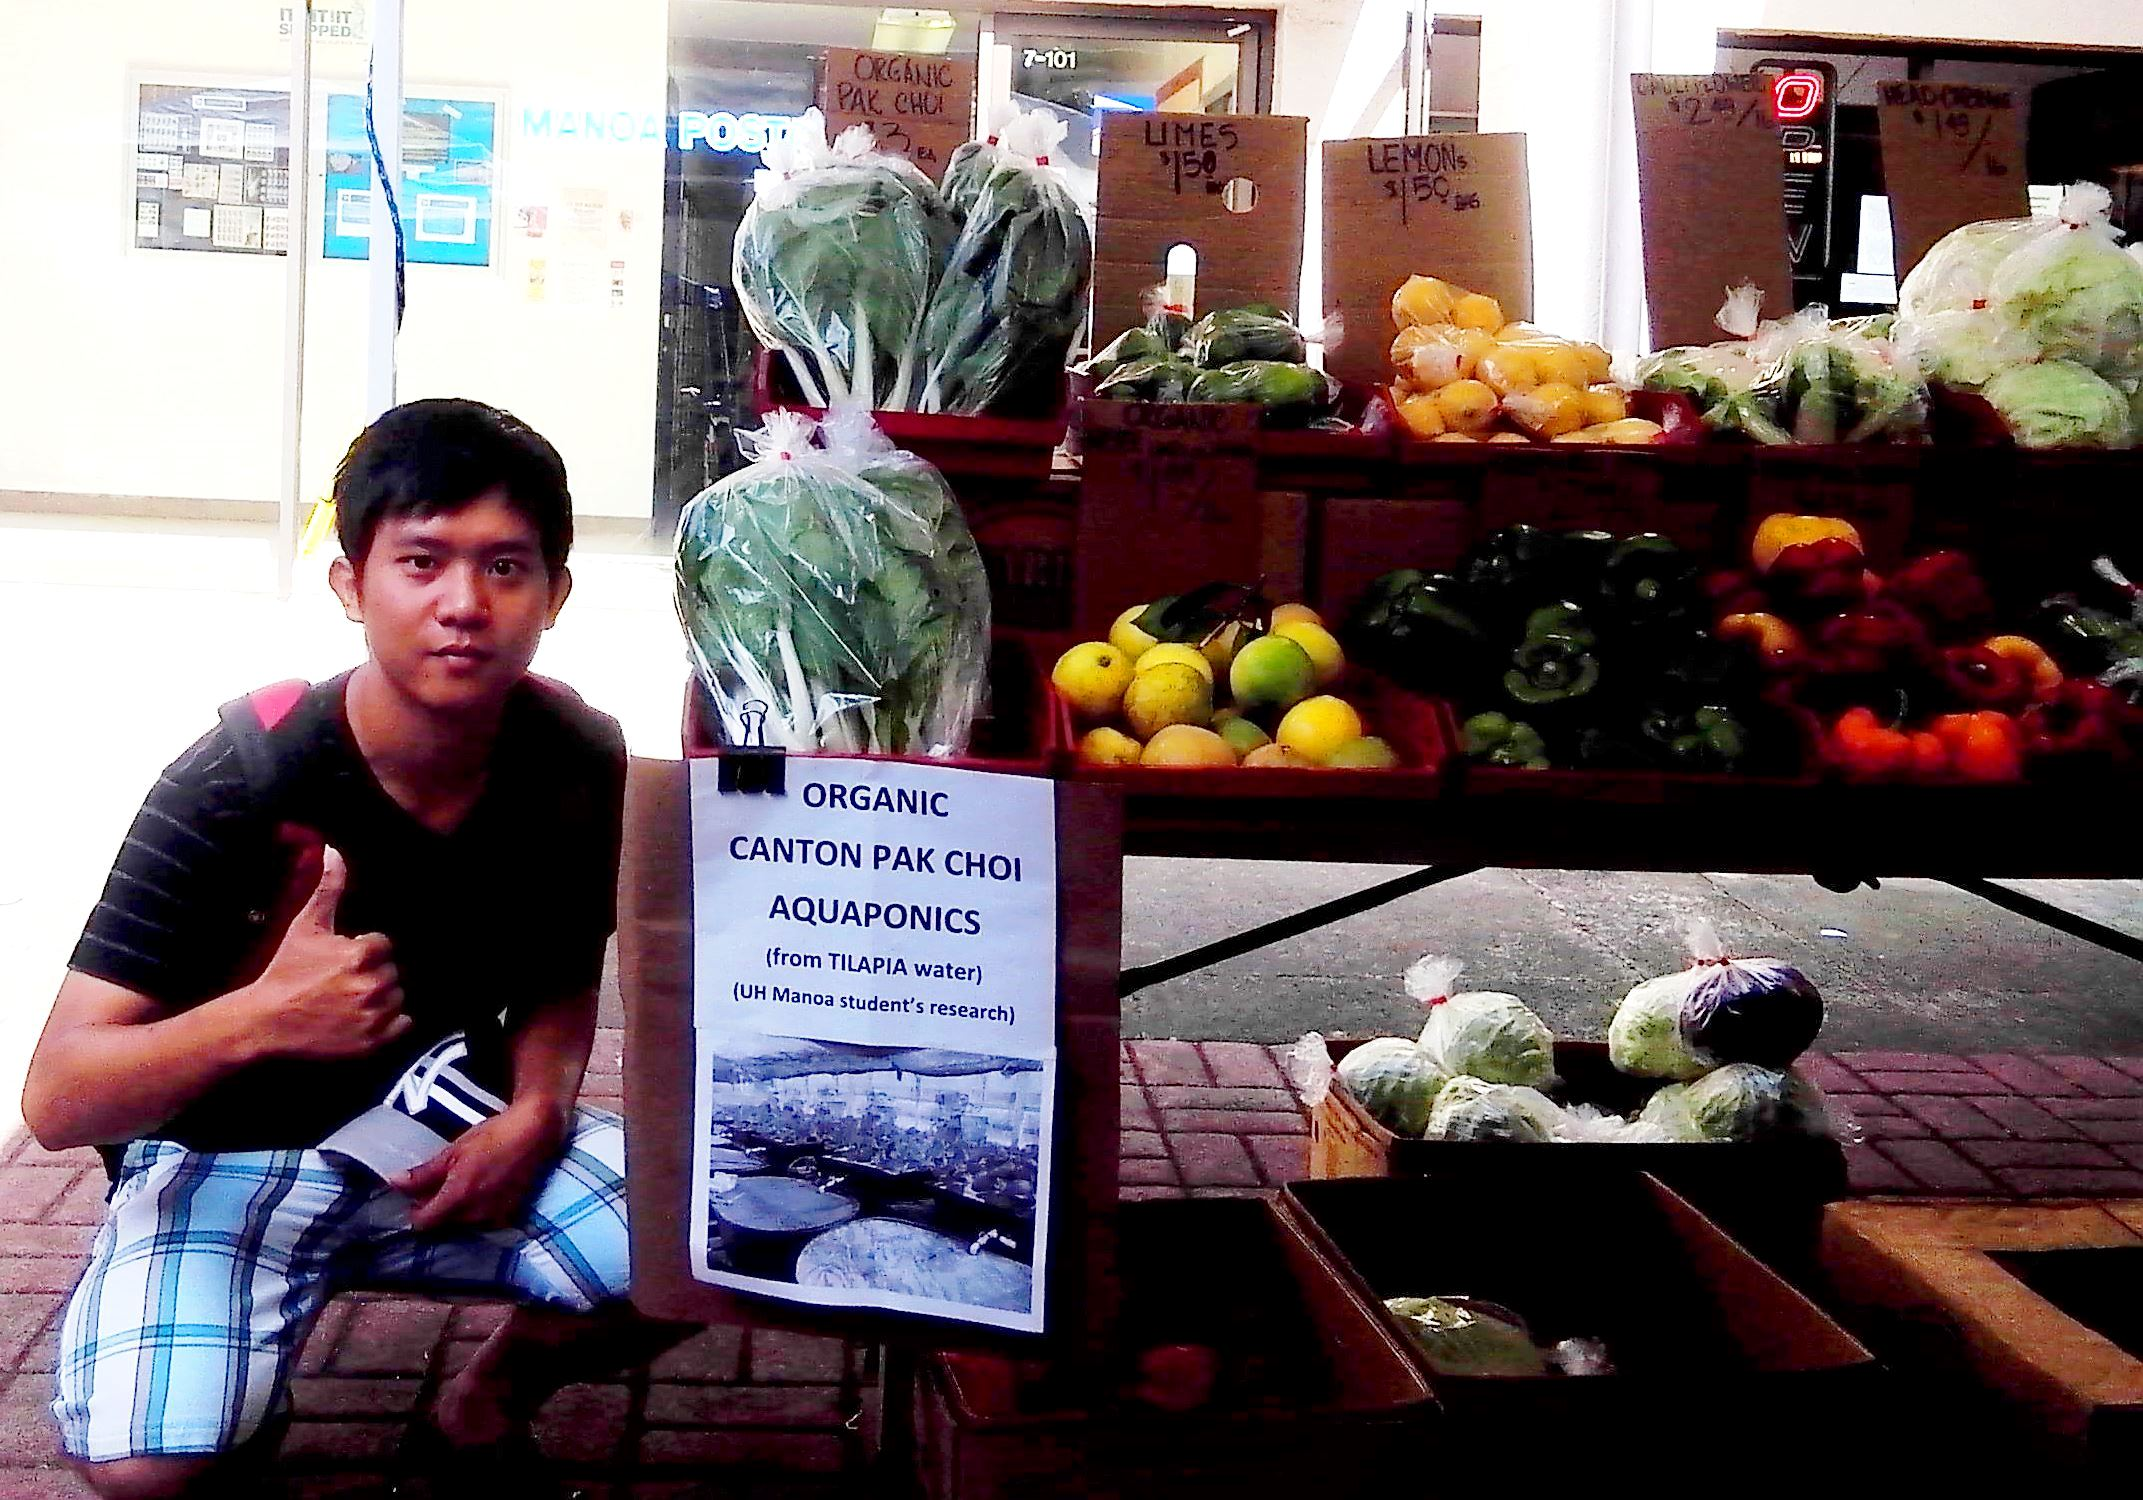 Selling vegetable from aquaponic experiment UH manoa